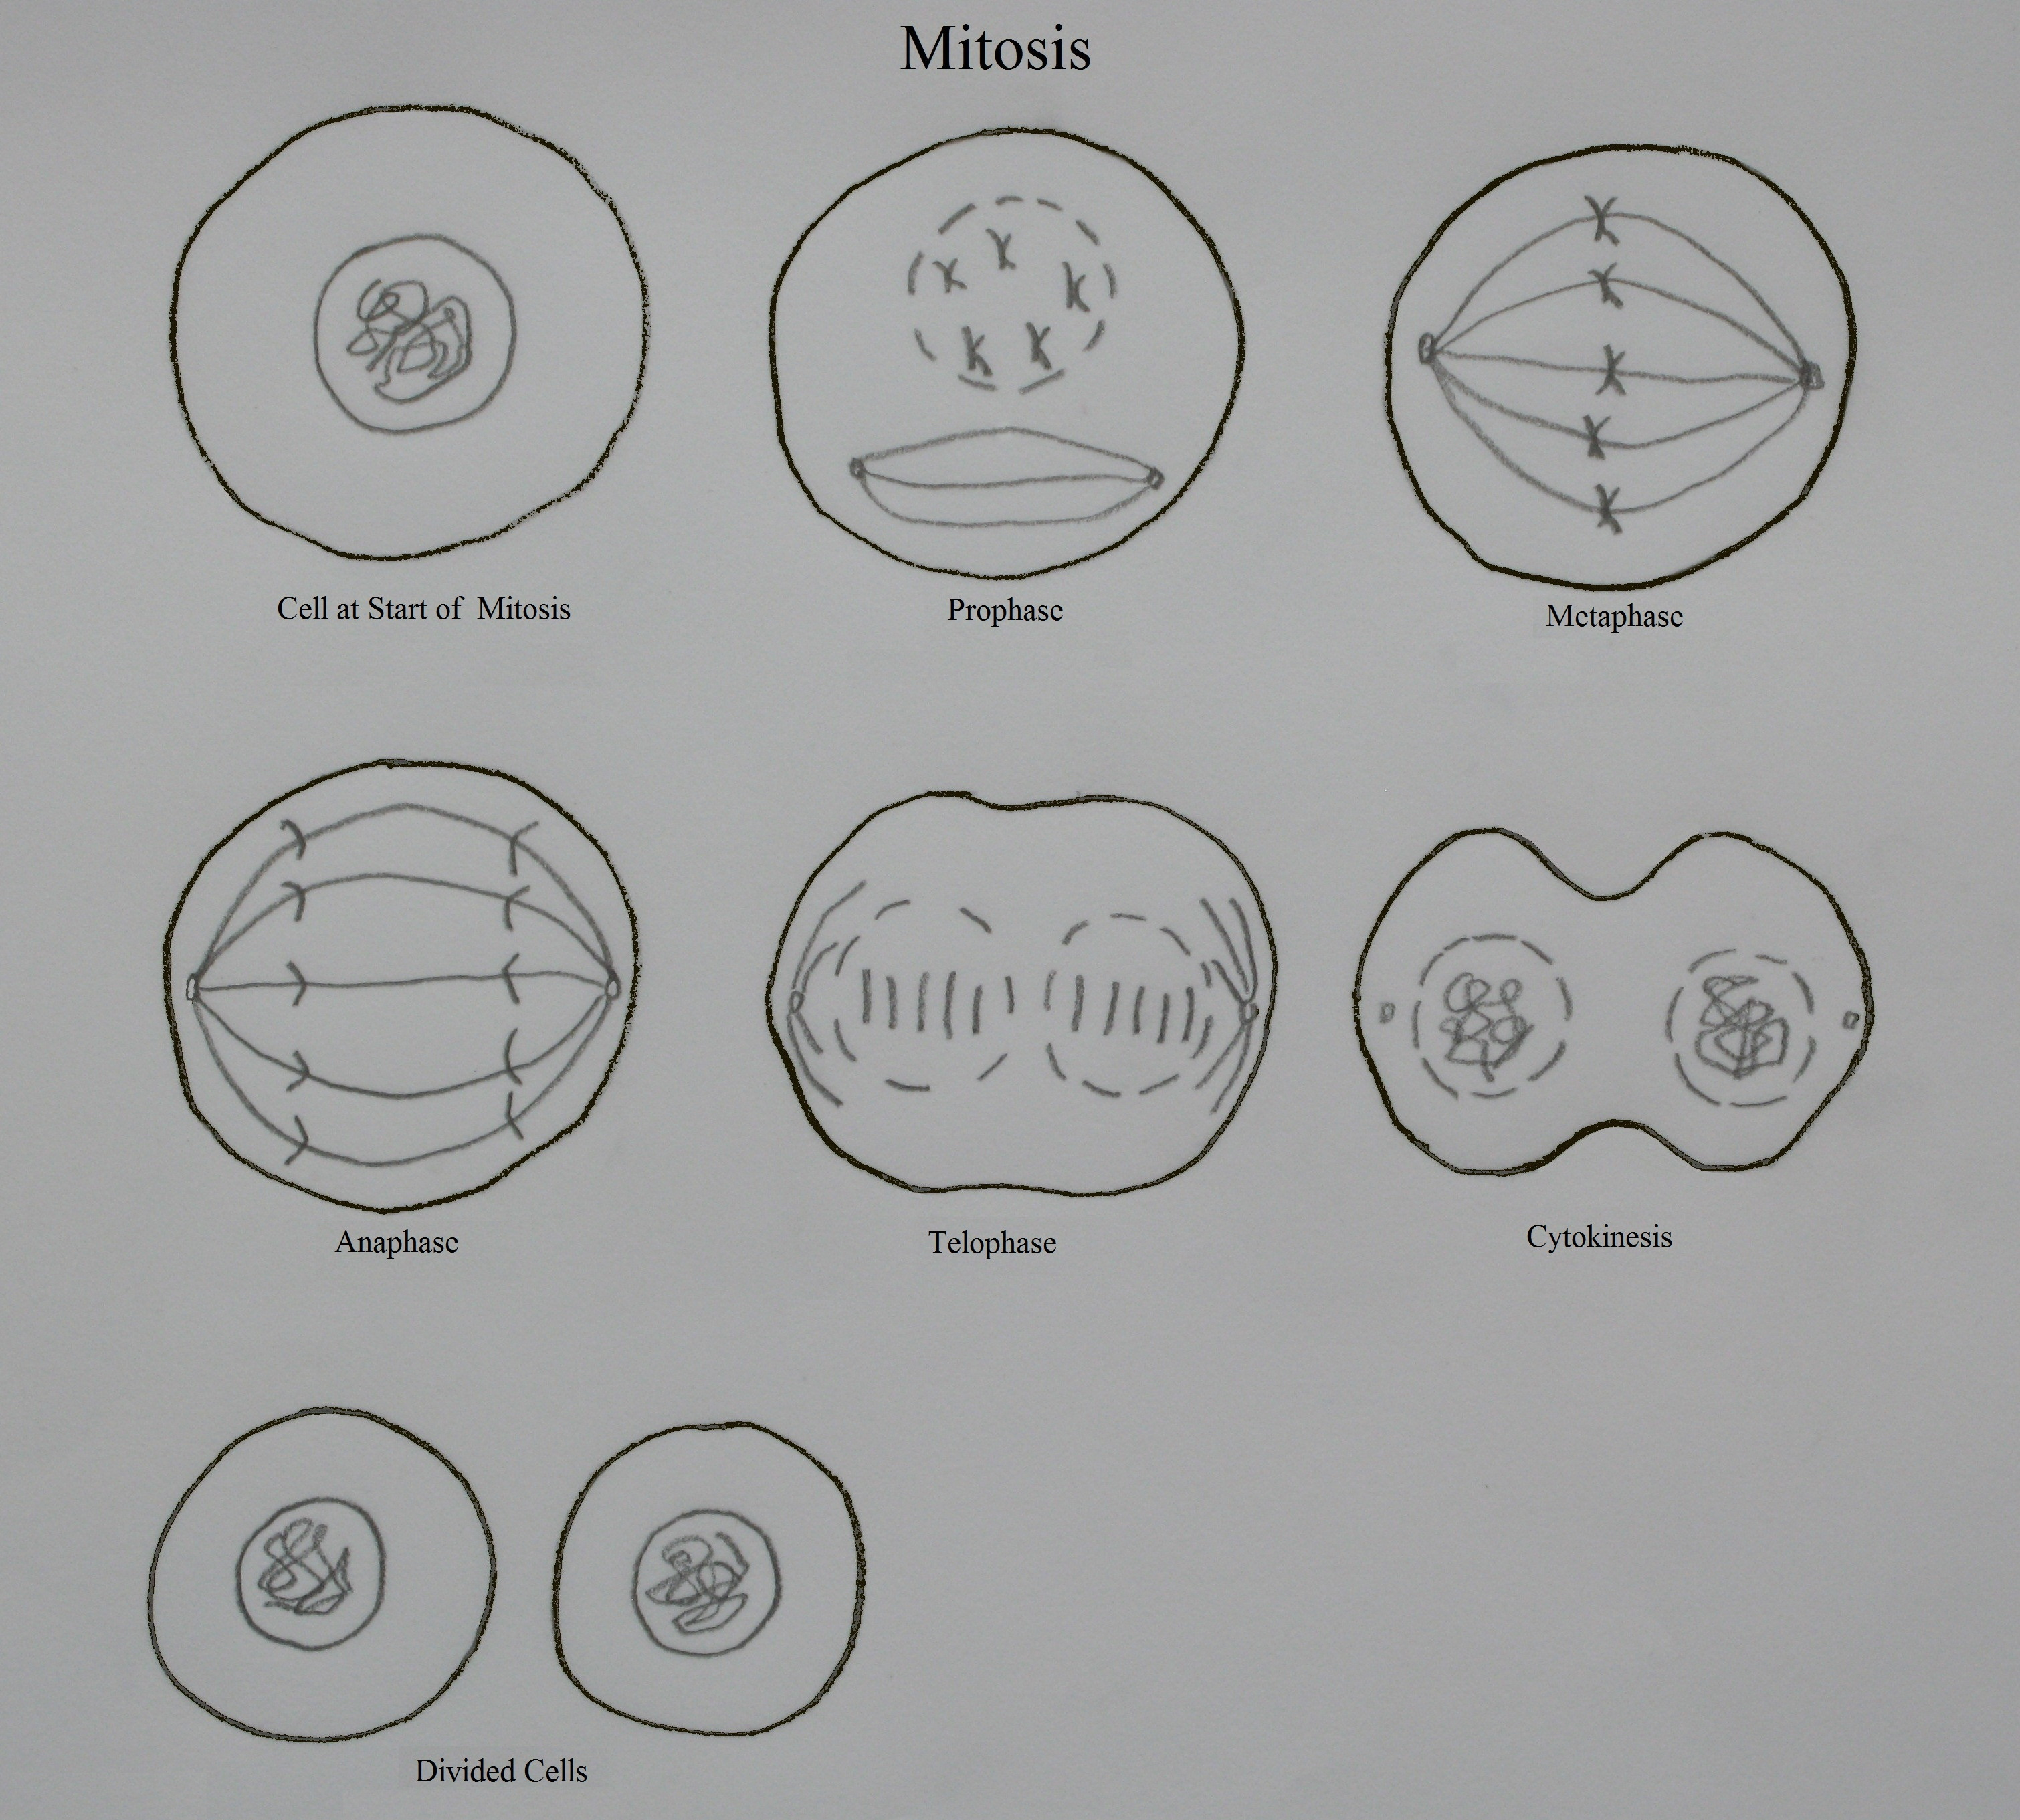 mitosis cell nucleus Freebase (000 / 0 votes) rate this definition: mitosis mitosis is the process by which a cell, which has previously replicated each of its chromosomes, separates the chromosomes in its cell nucleus into two identical sets of chromosomes, each set in its own new nucleus.